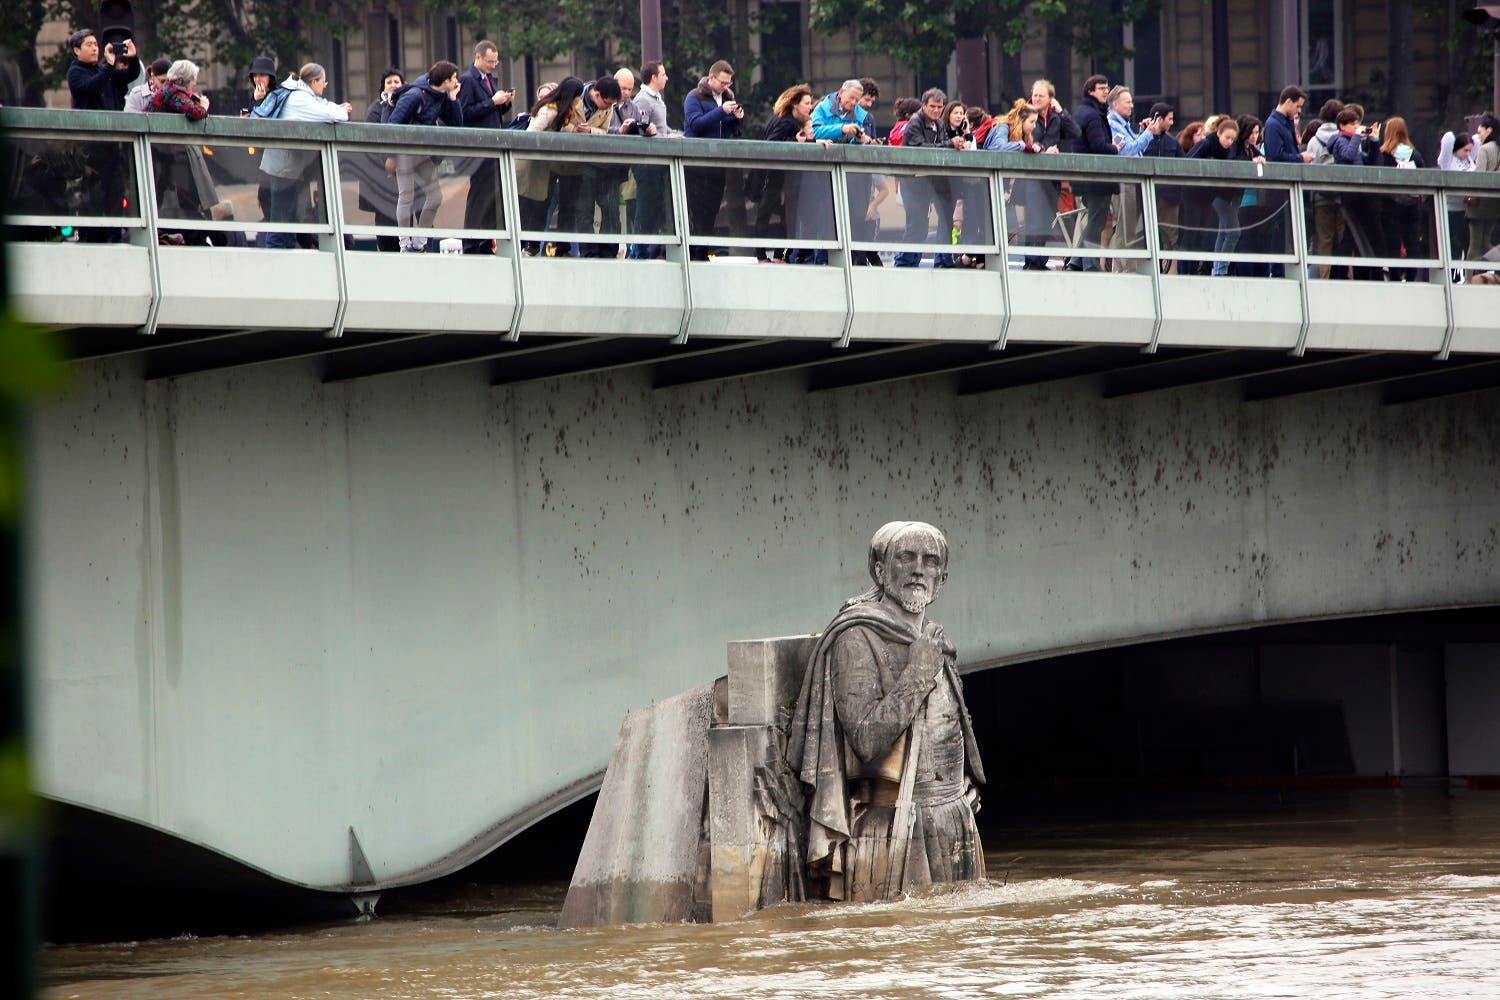 People looking at the floods stand on the Alma bridge by the Zouave statue which is used as a measuring instrument during floods in Paris, France Friday June 3, 2016. (Photo: AP)